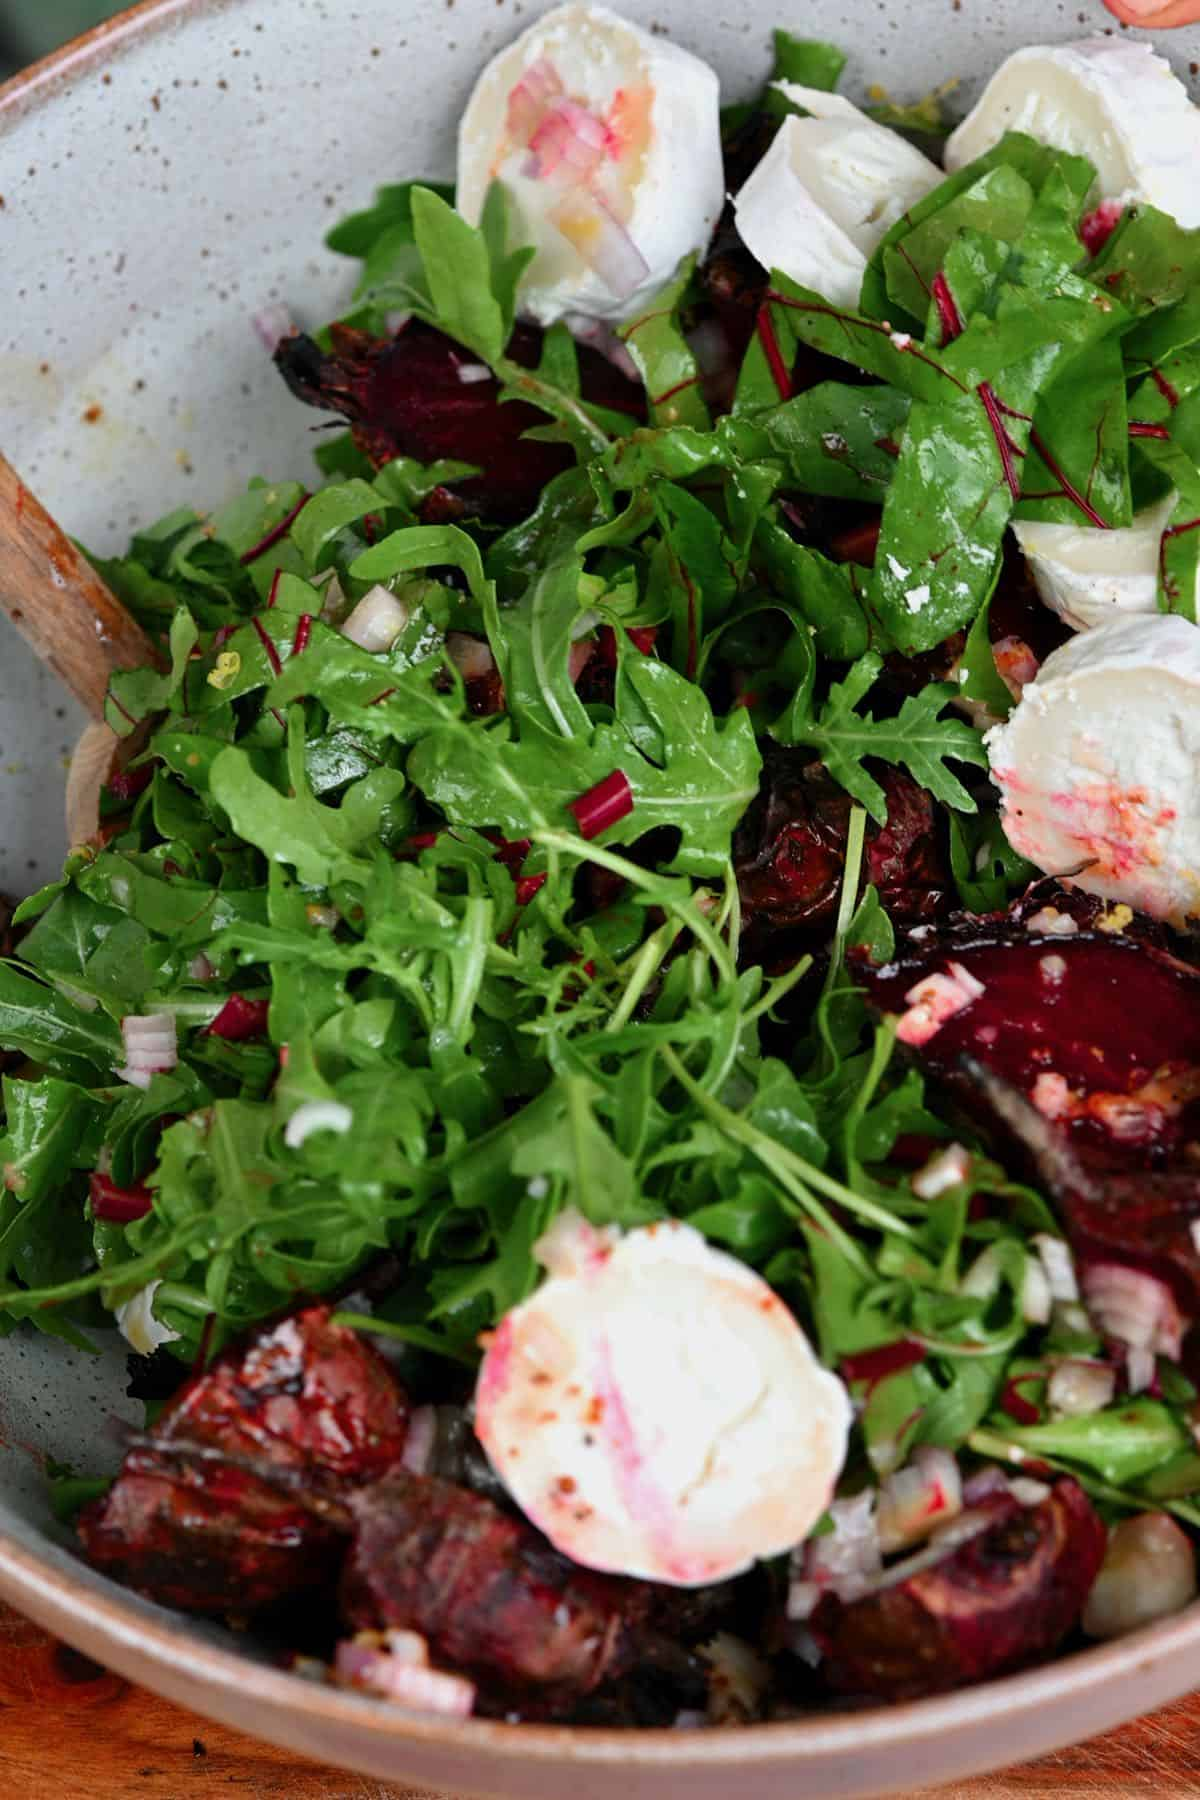 Mixing roasted beet salad with goat cheese in bowl